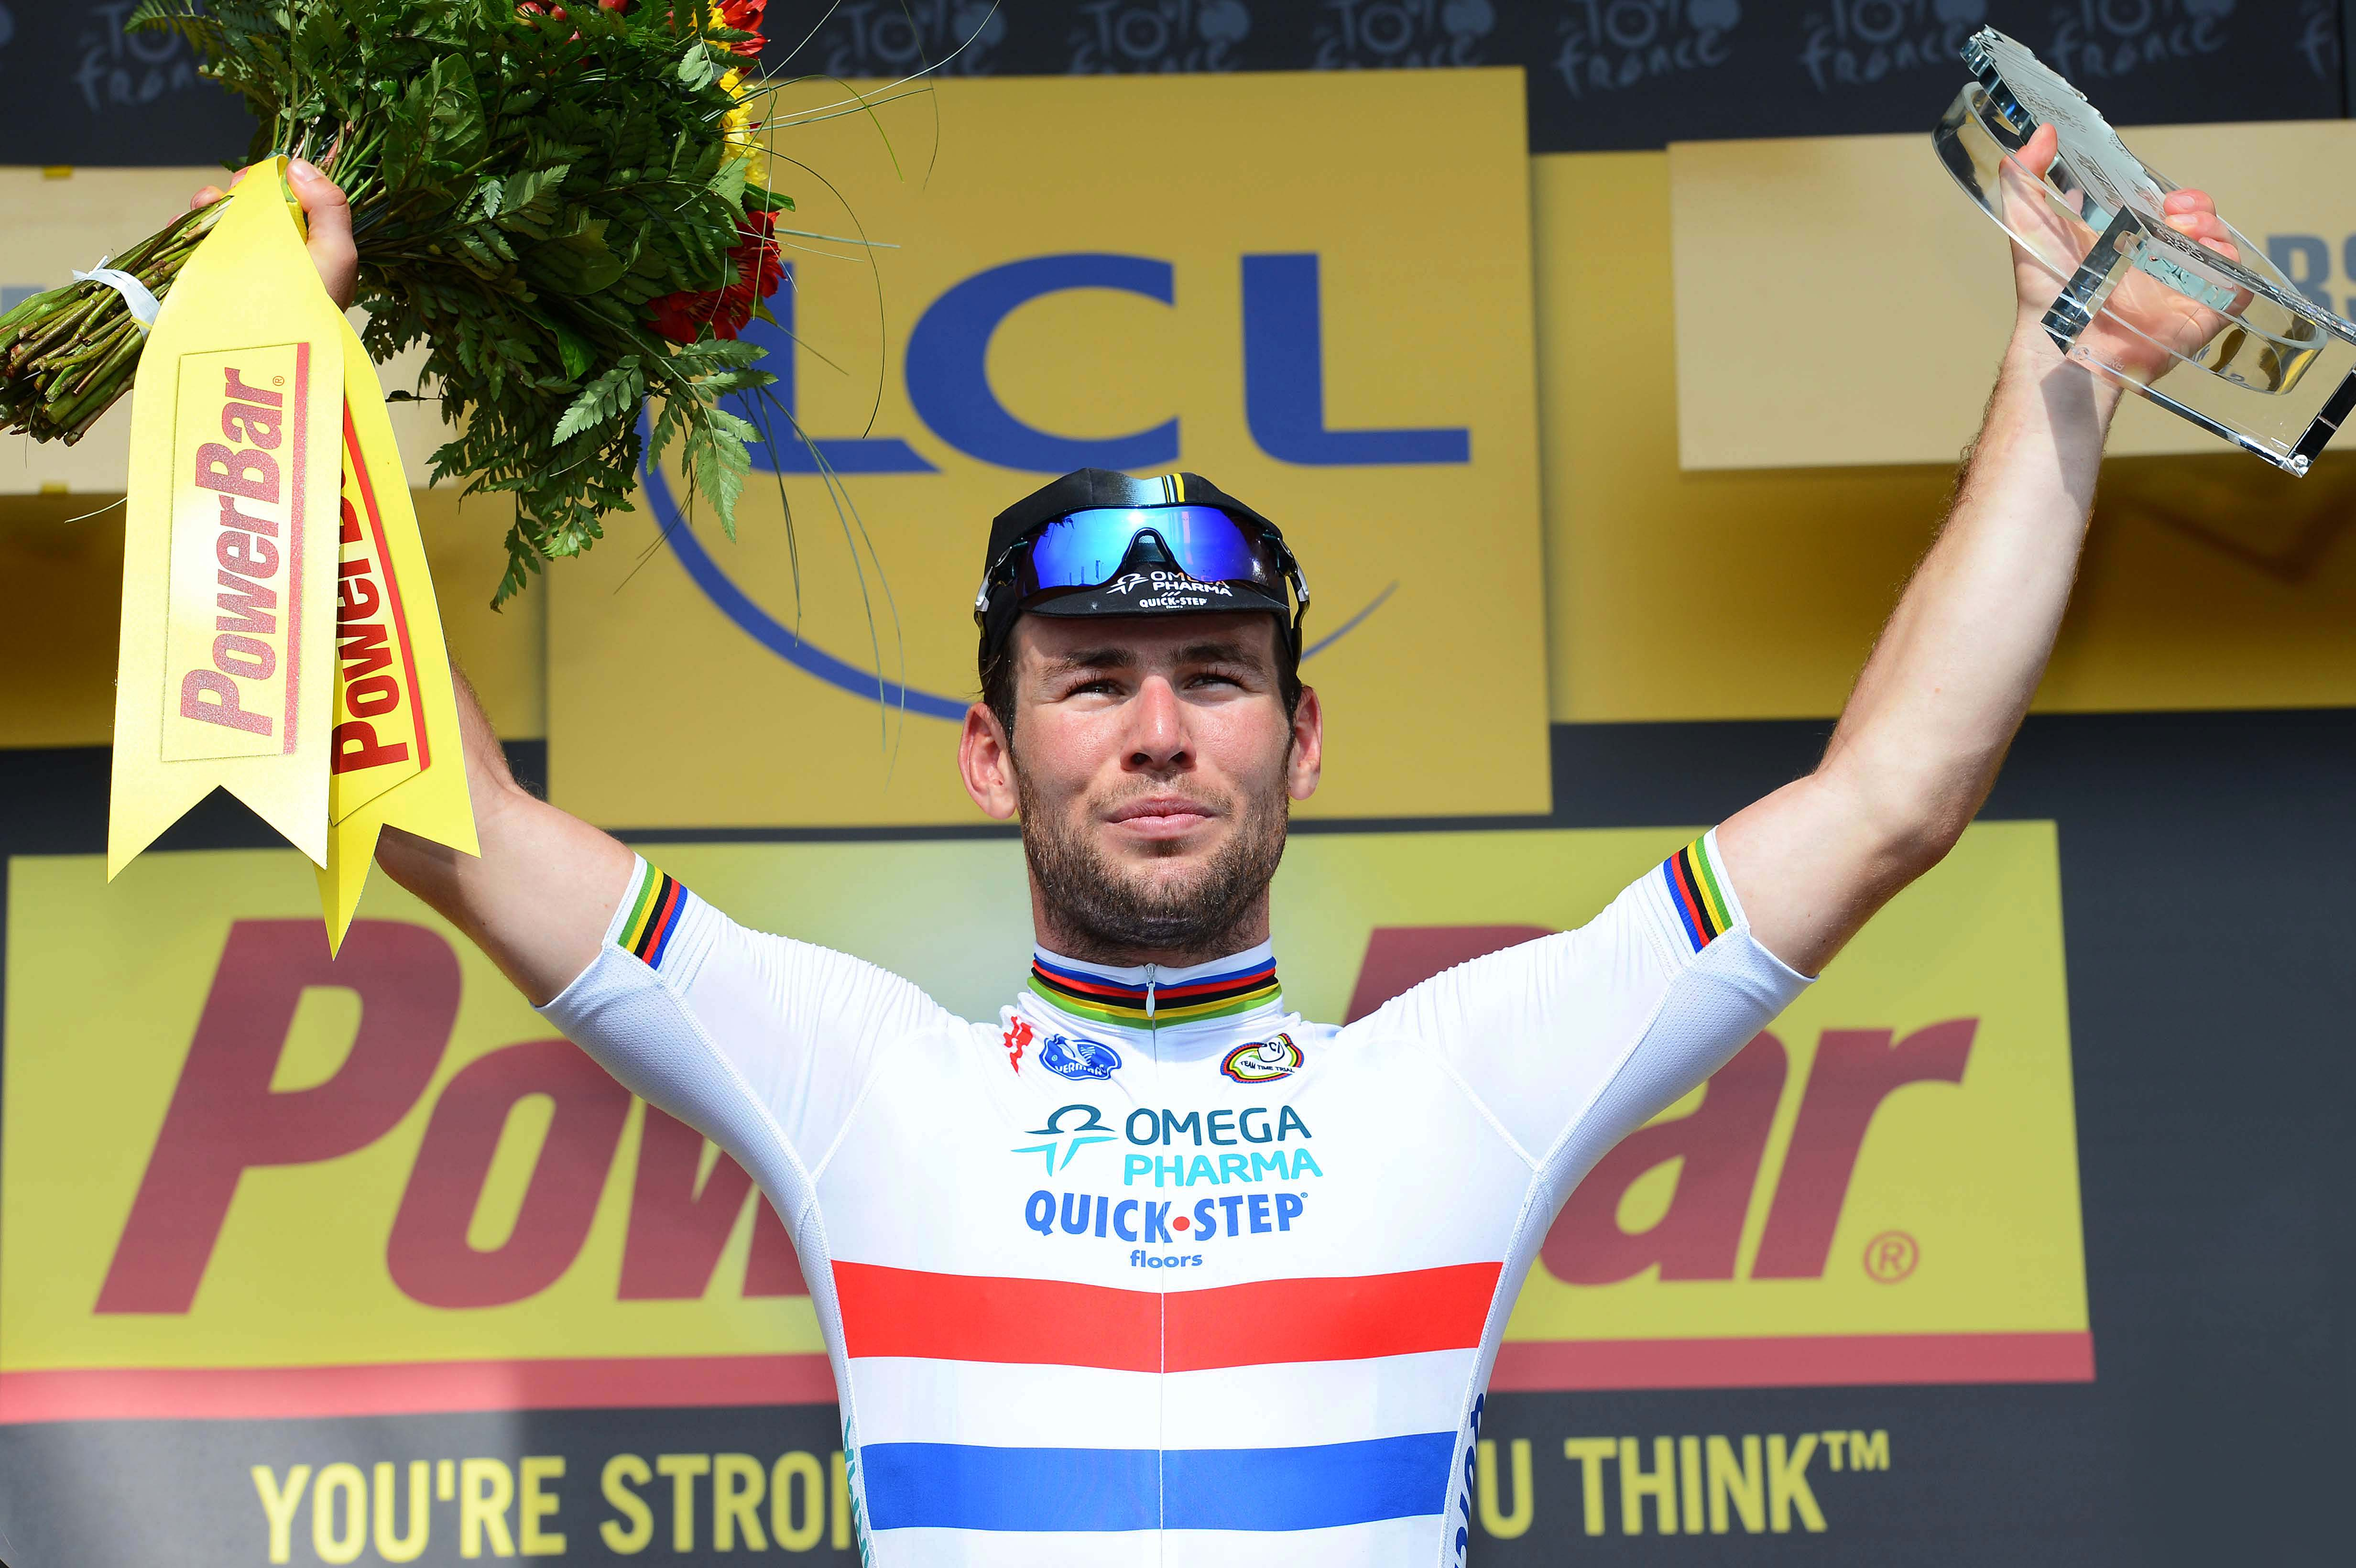 Podium Cavendish